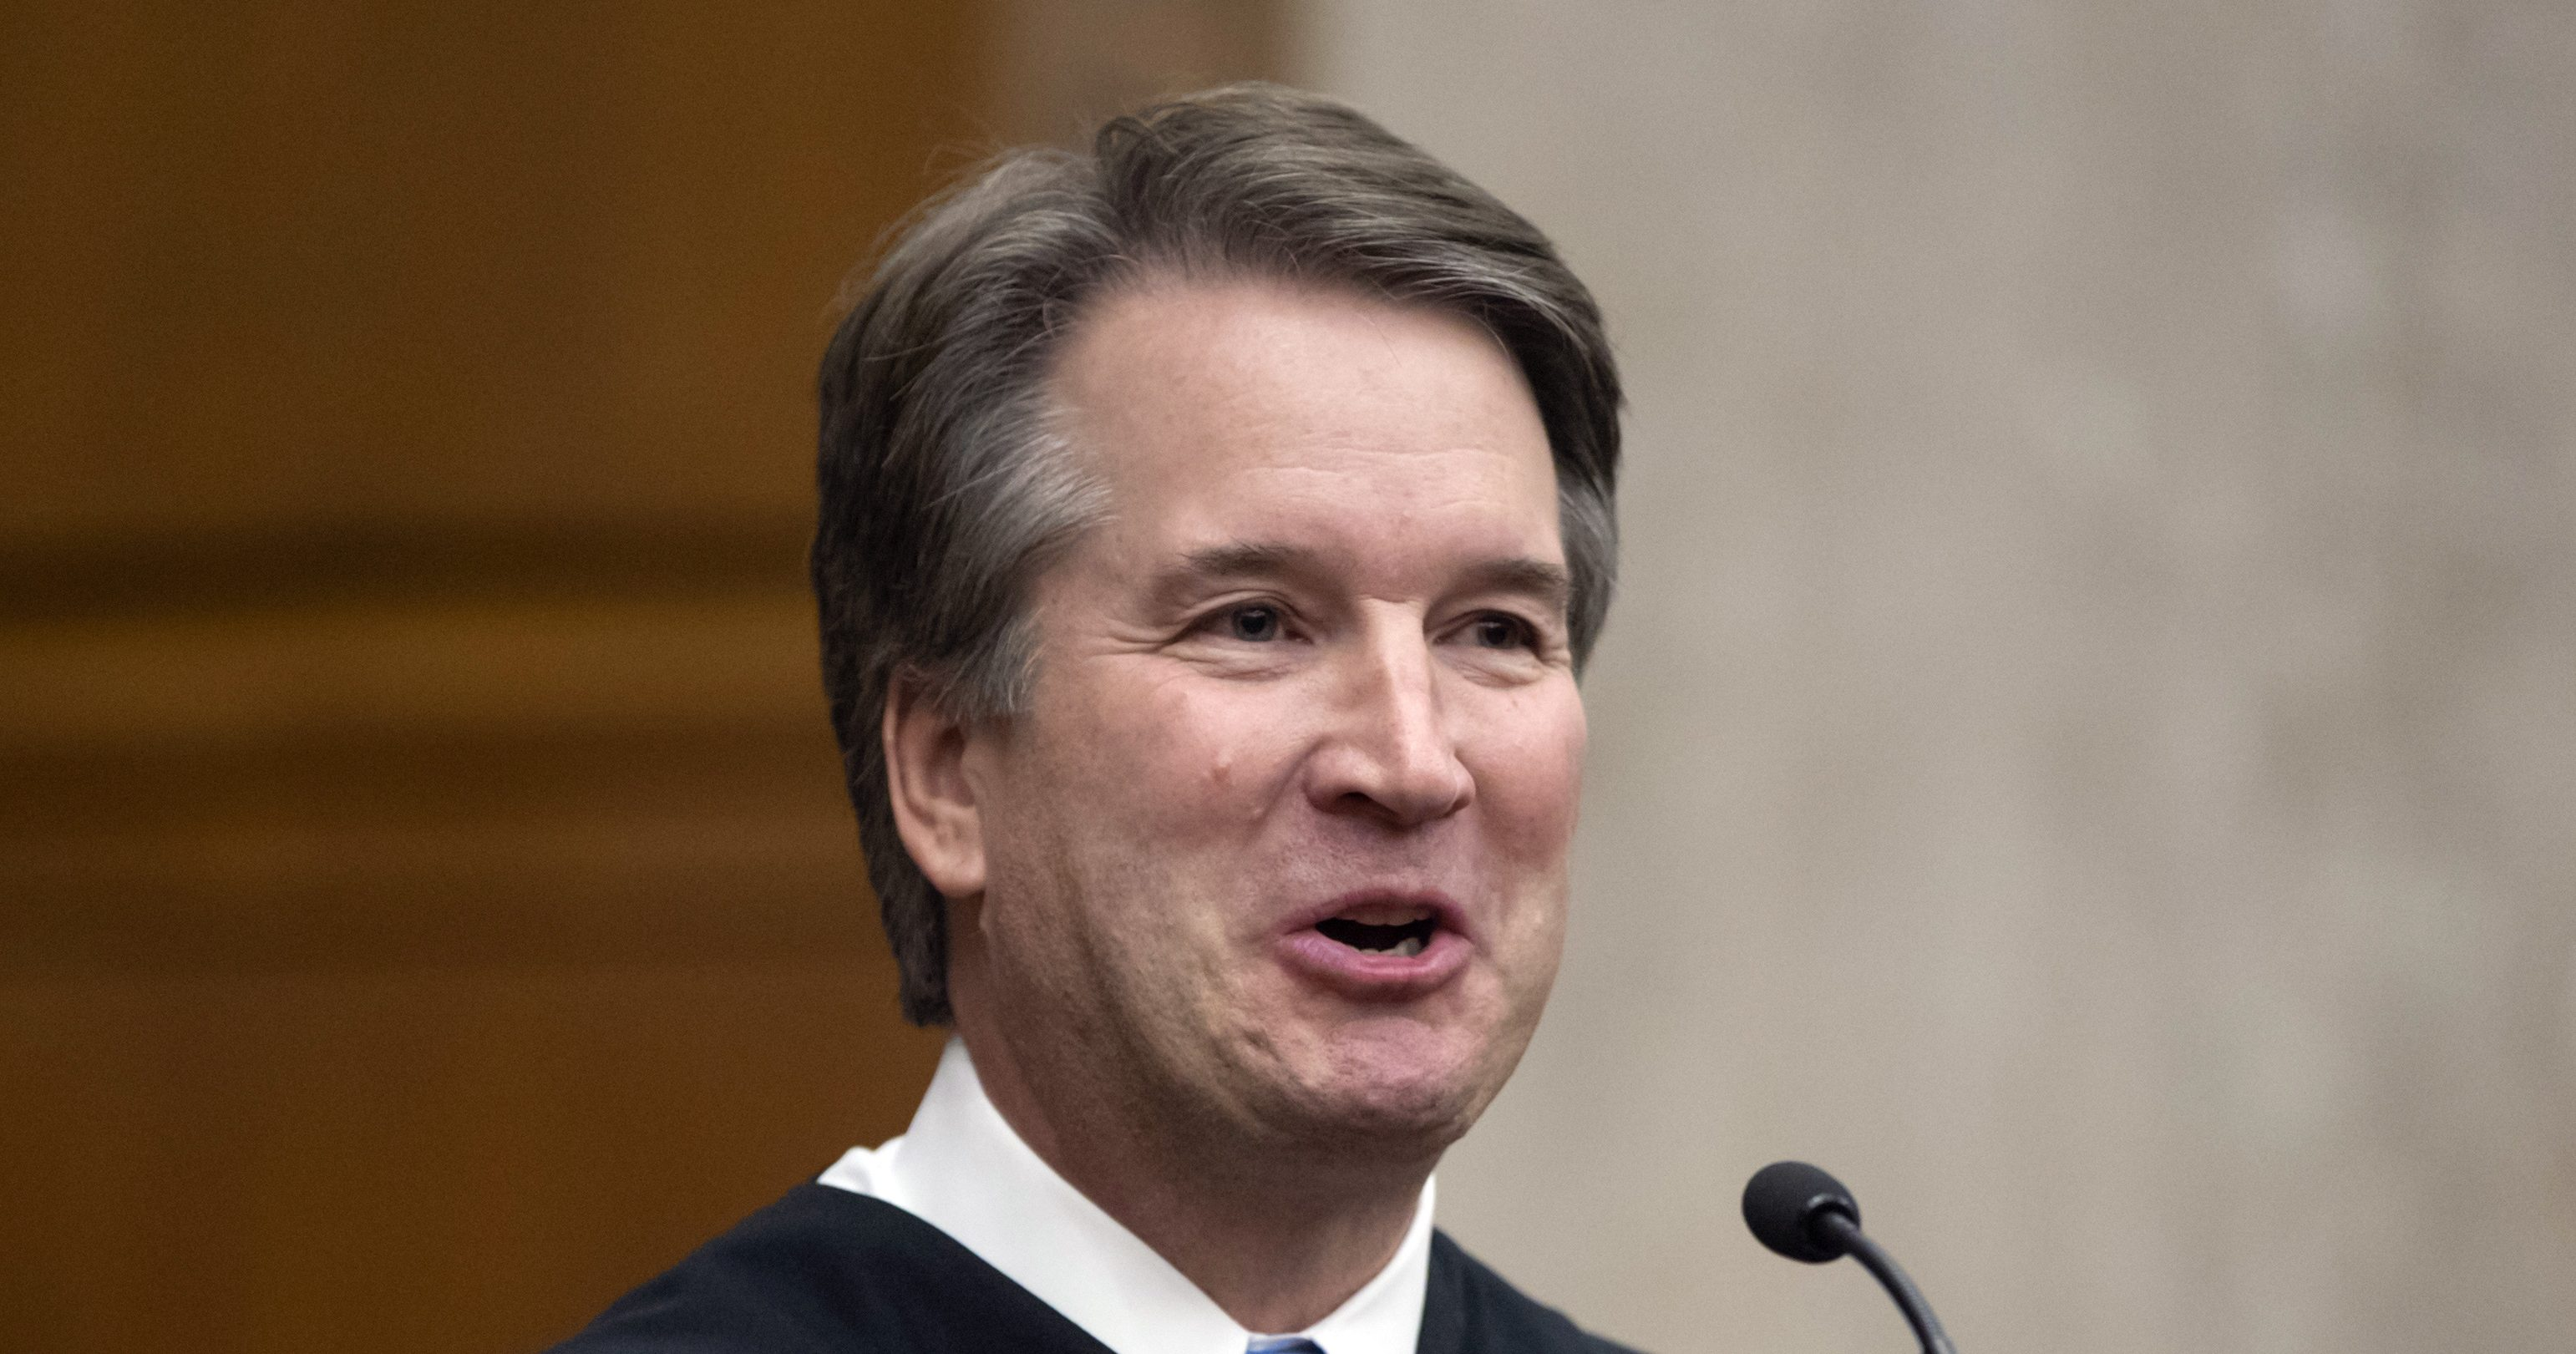 In this Aug. 7, 2018, photo. President Donald Trump's Supreme Court nominee, Judge Brett Kavanaugh, officiates at the swearing-in of Judge Britt Grant to take a seat on the U.S. Court of Appeals for the Eleventh Circuit in Atlanta at the U.S. District Courthouse in Washington.